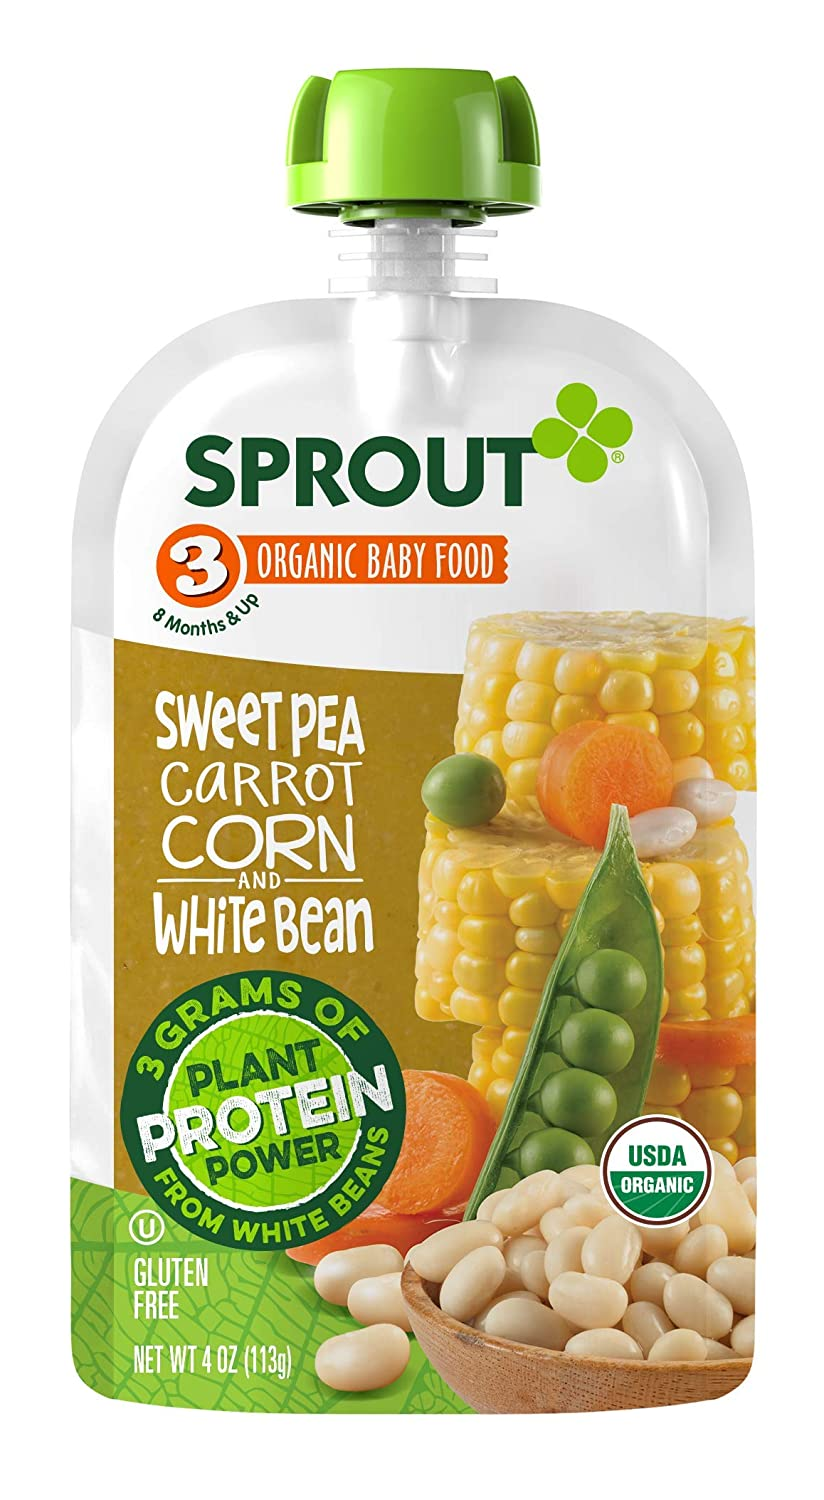 Sprout Organic Stage 3 Baby Food Pouches with Plant Powered Protein, Sweet Pea Carrot Corn & White Bean, 4 Ounce (Pack of 6)